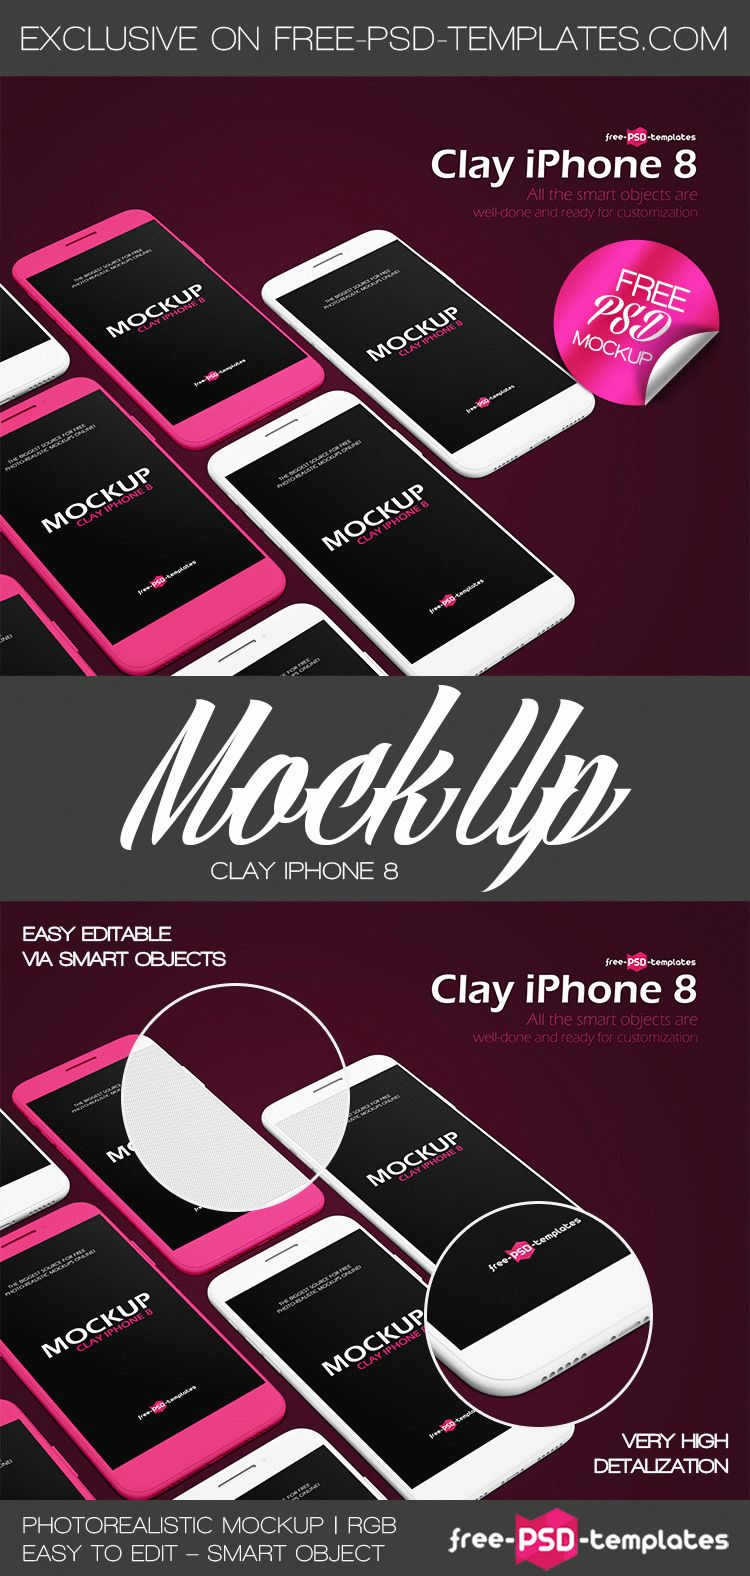 Free Clay iPhone 8 Mockup